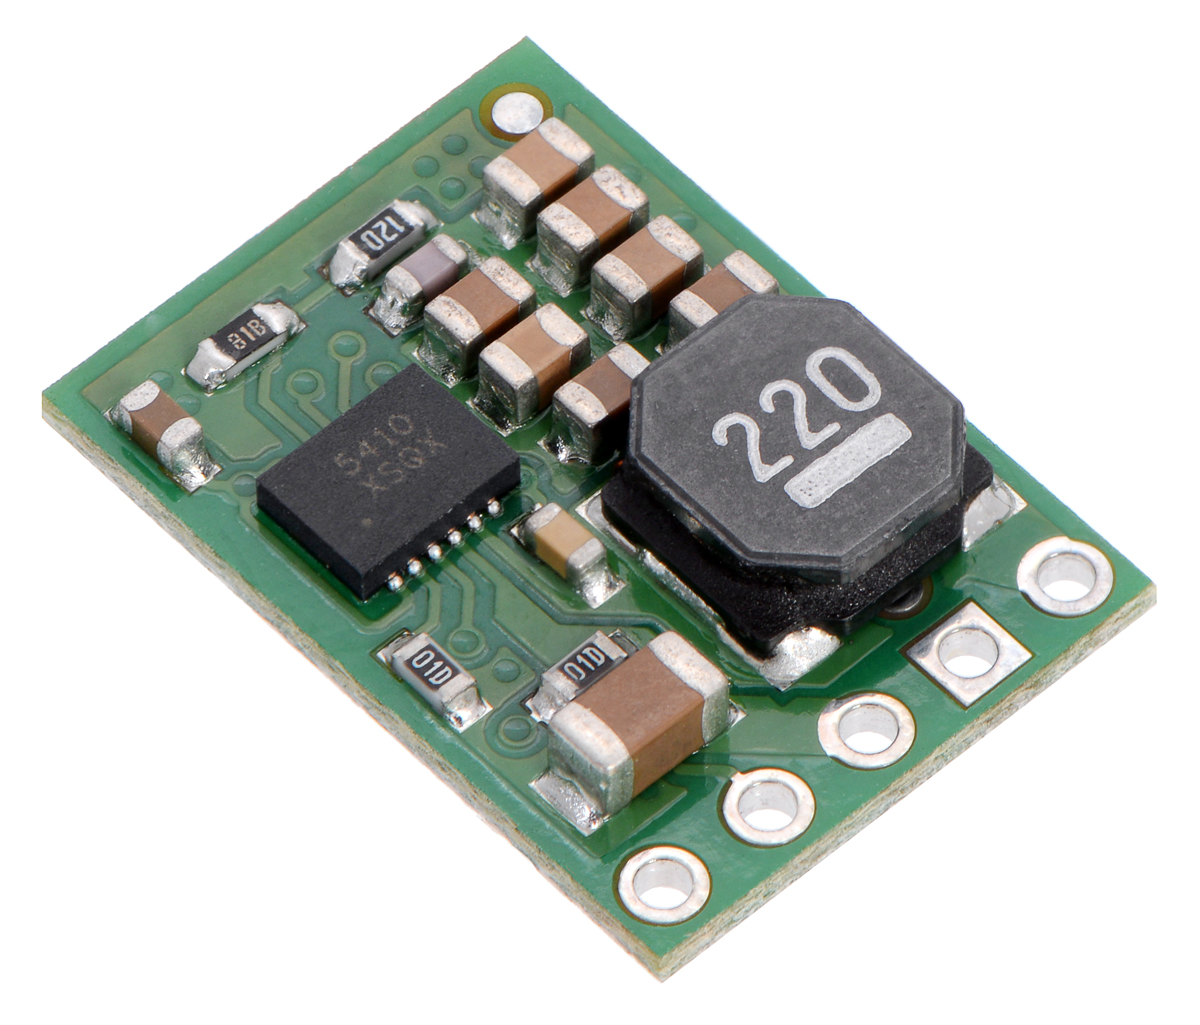 Pololu 6V, 1A Step-Down Voltage Regulator D24V10F6